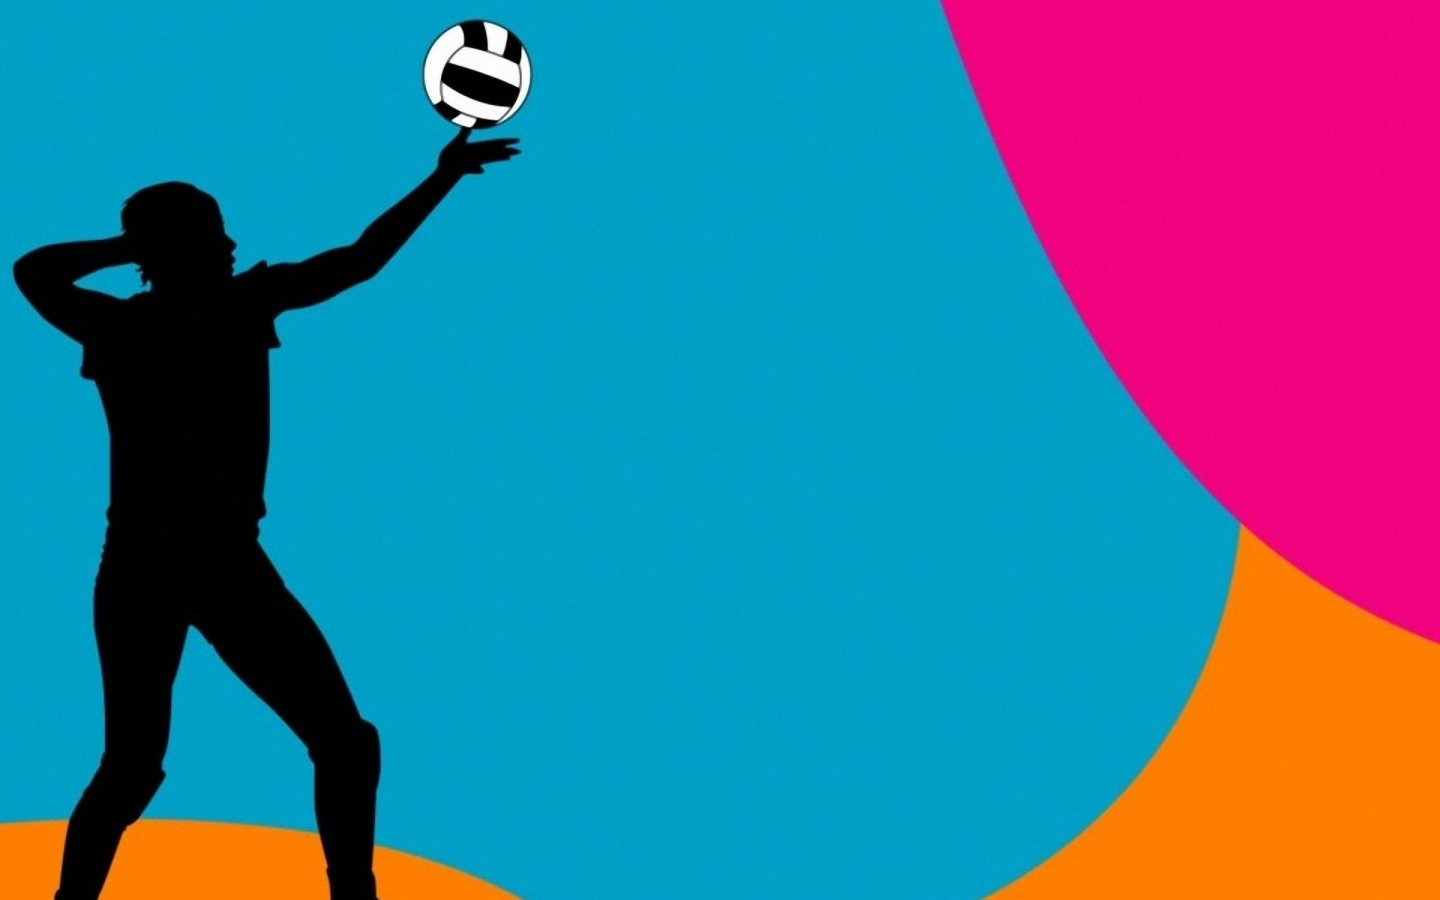 FT48FT Volleyball Photos   Wallpapers and Pictures here 1440x900